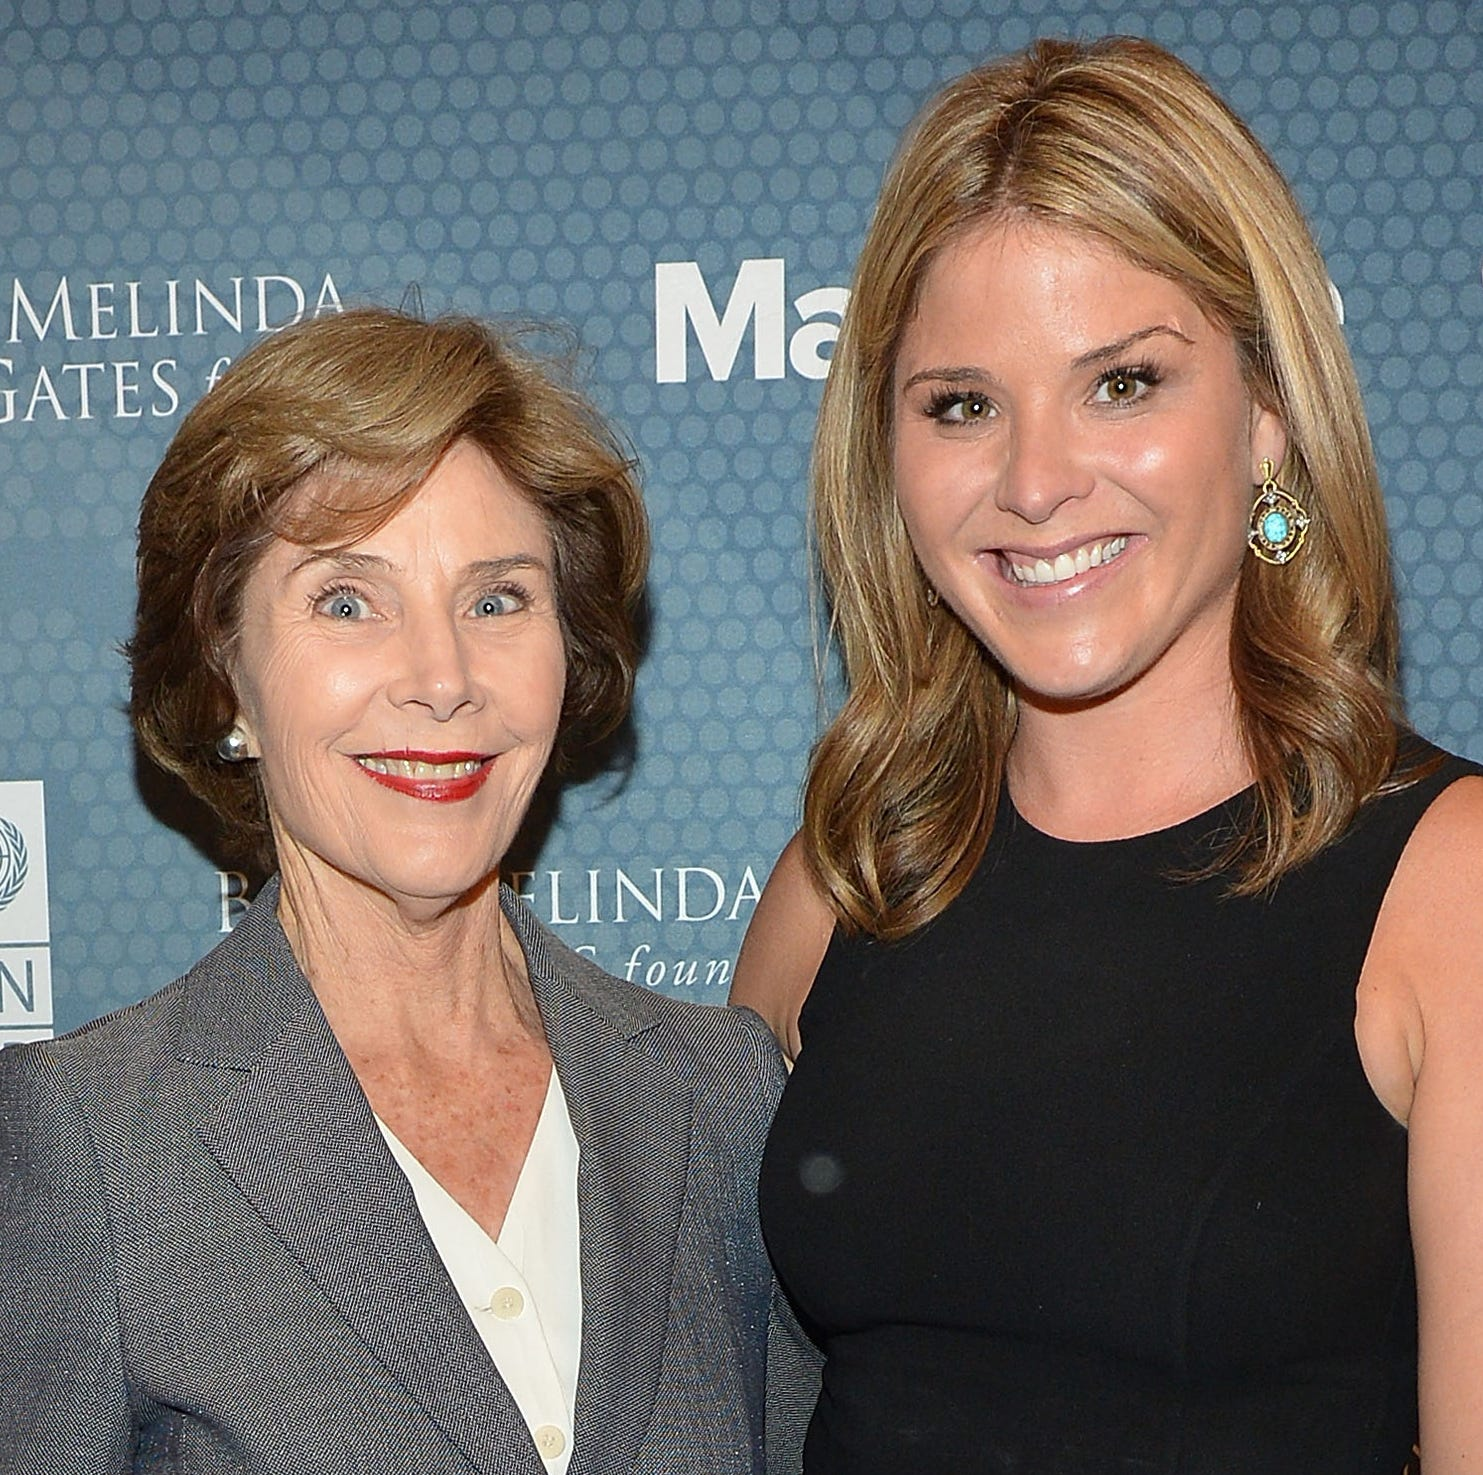 Former First Lady of the United States Laura Bush and daughter author Jenna Bush Hager attend the 2014 Social Good Summit at 92Y on September 22, 2014 in New York City.